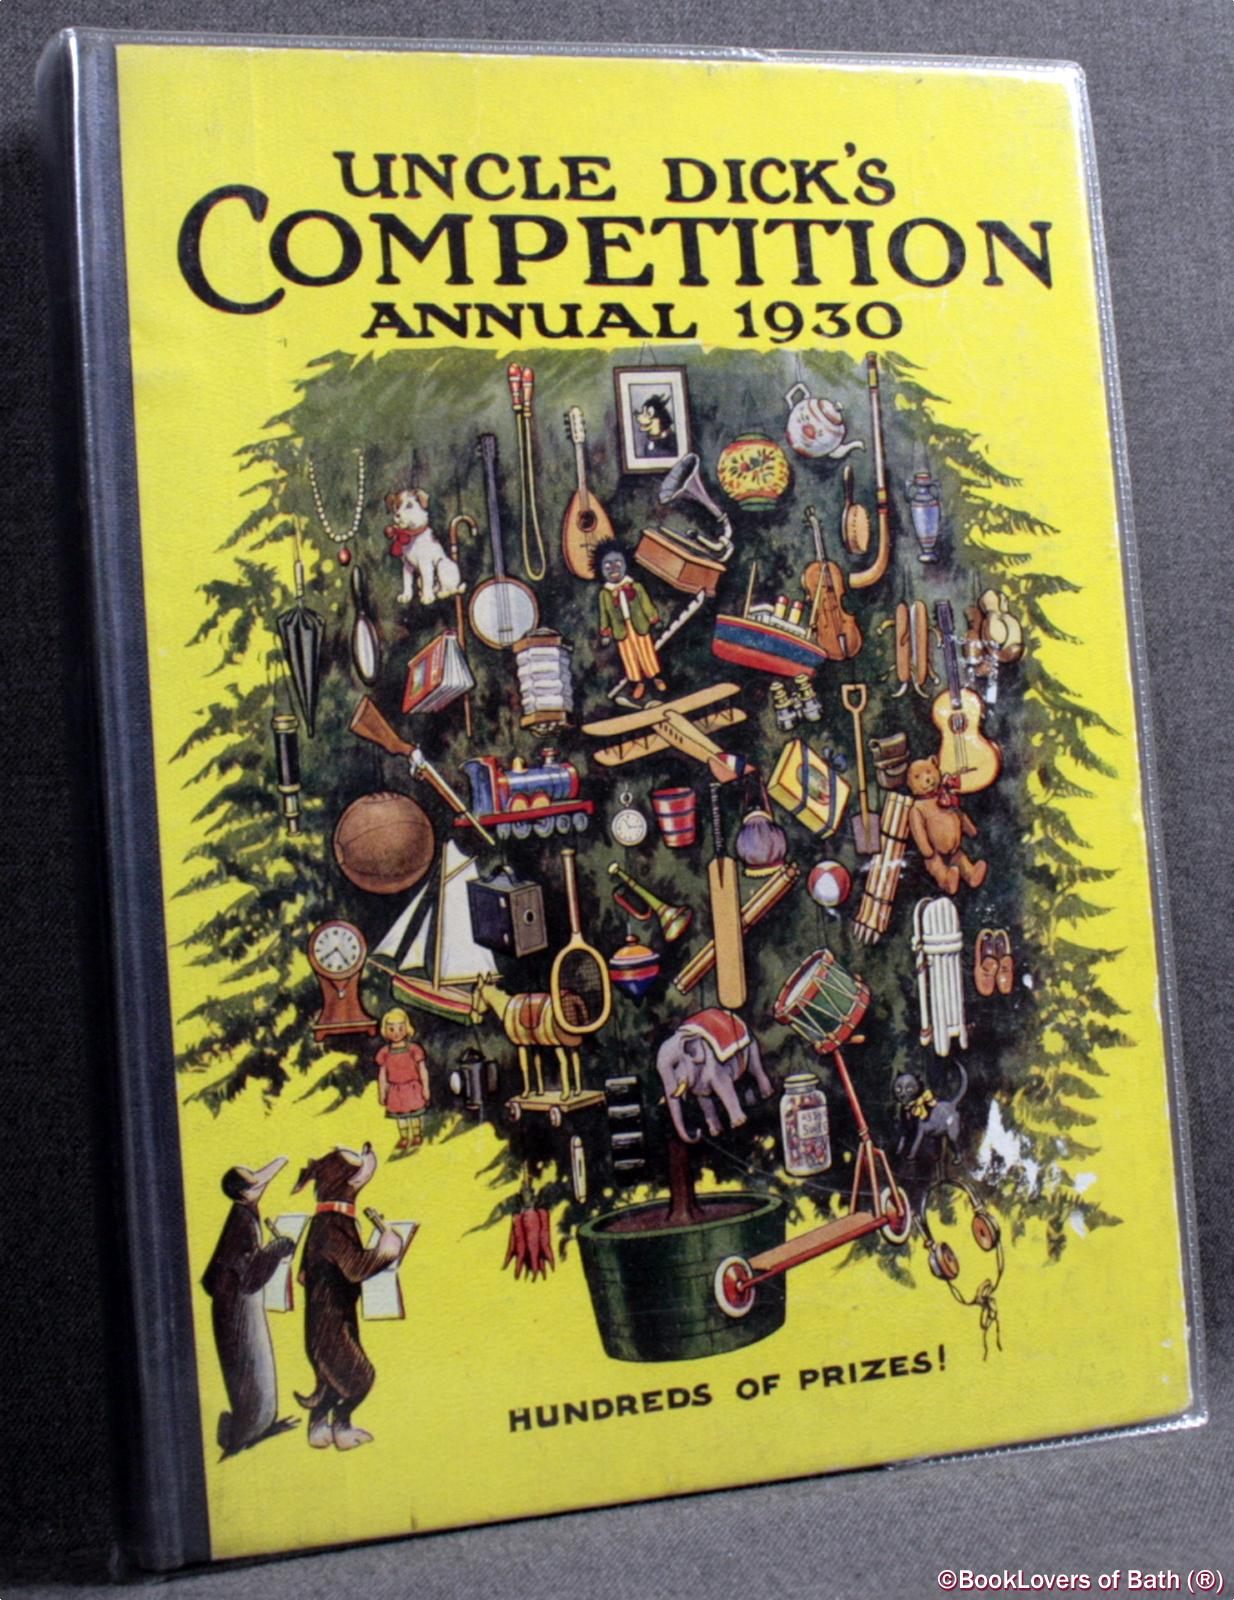 Uncle Dick's Competition Annual 1930 - Anon.